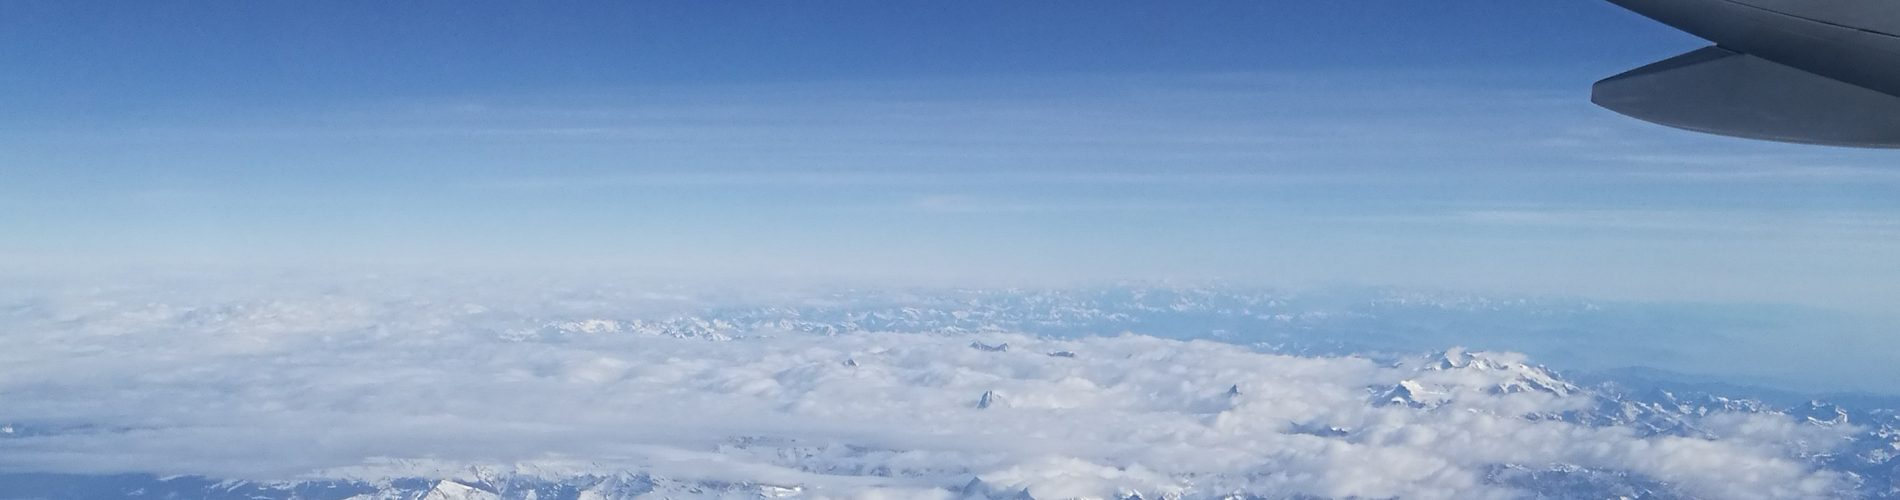 Air photo of the Alps